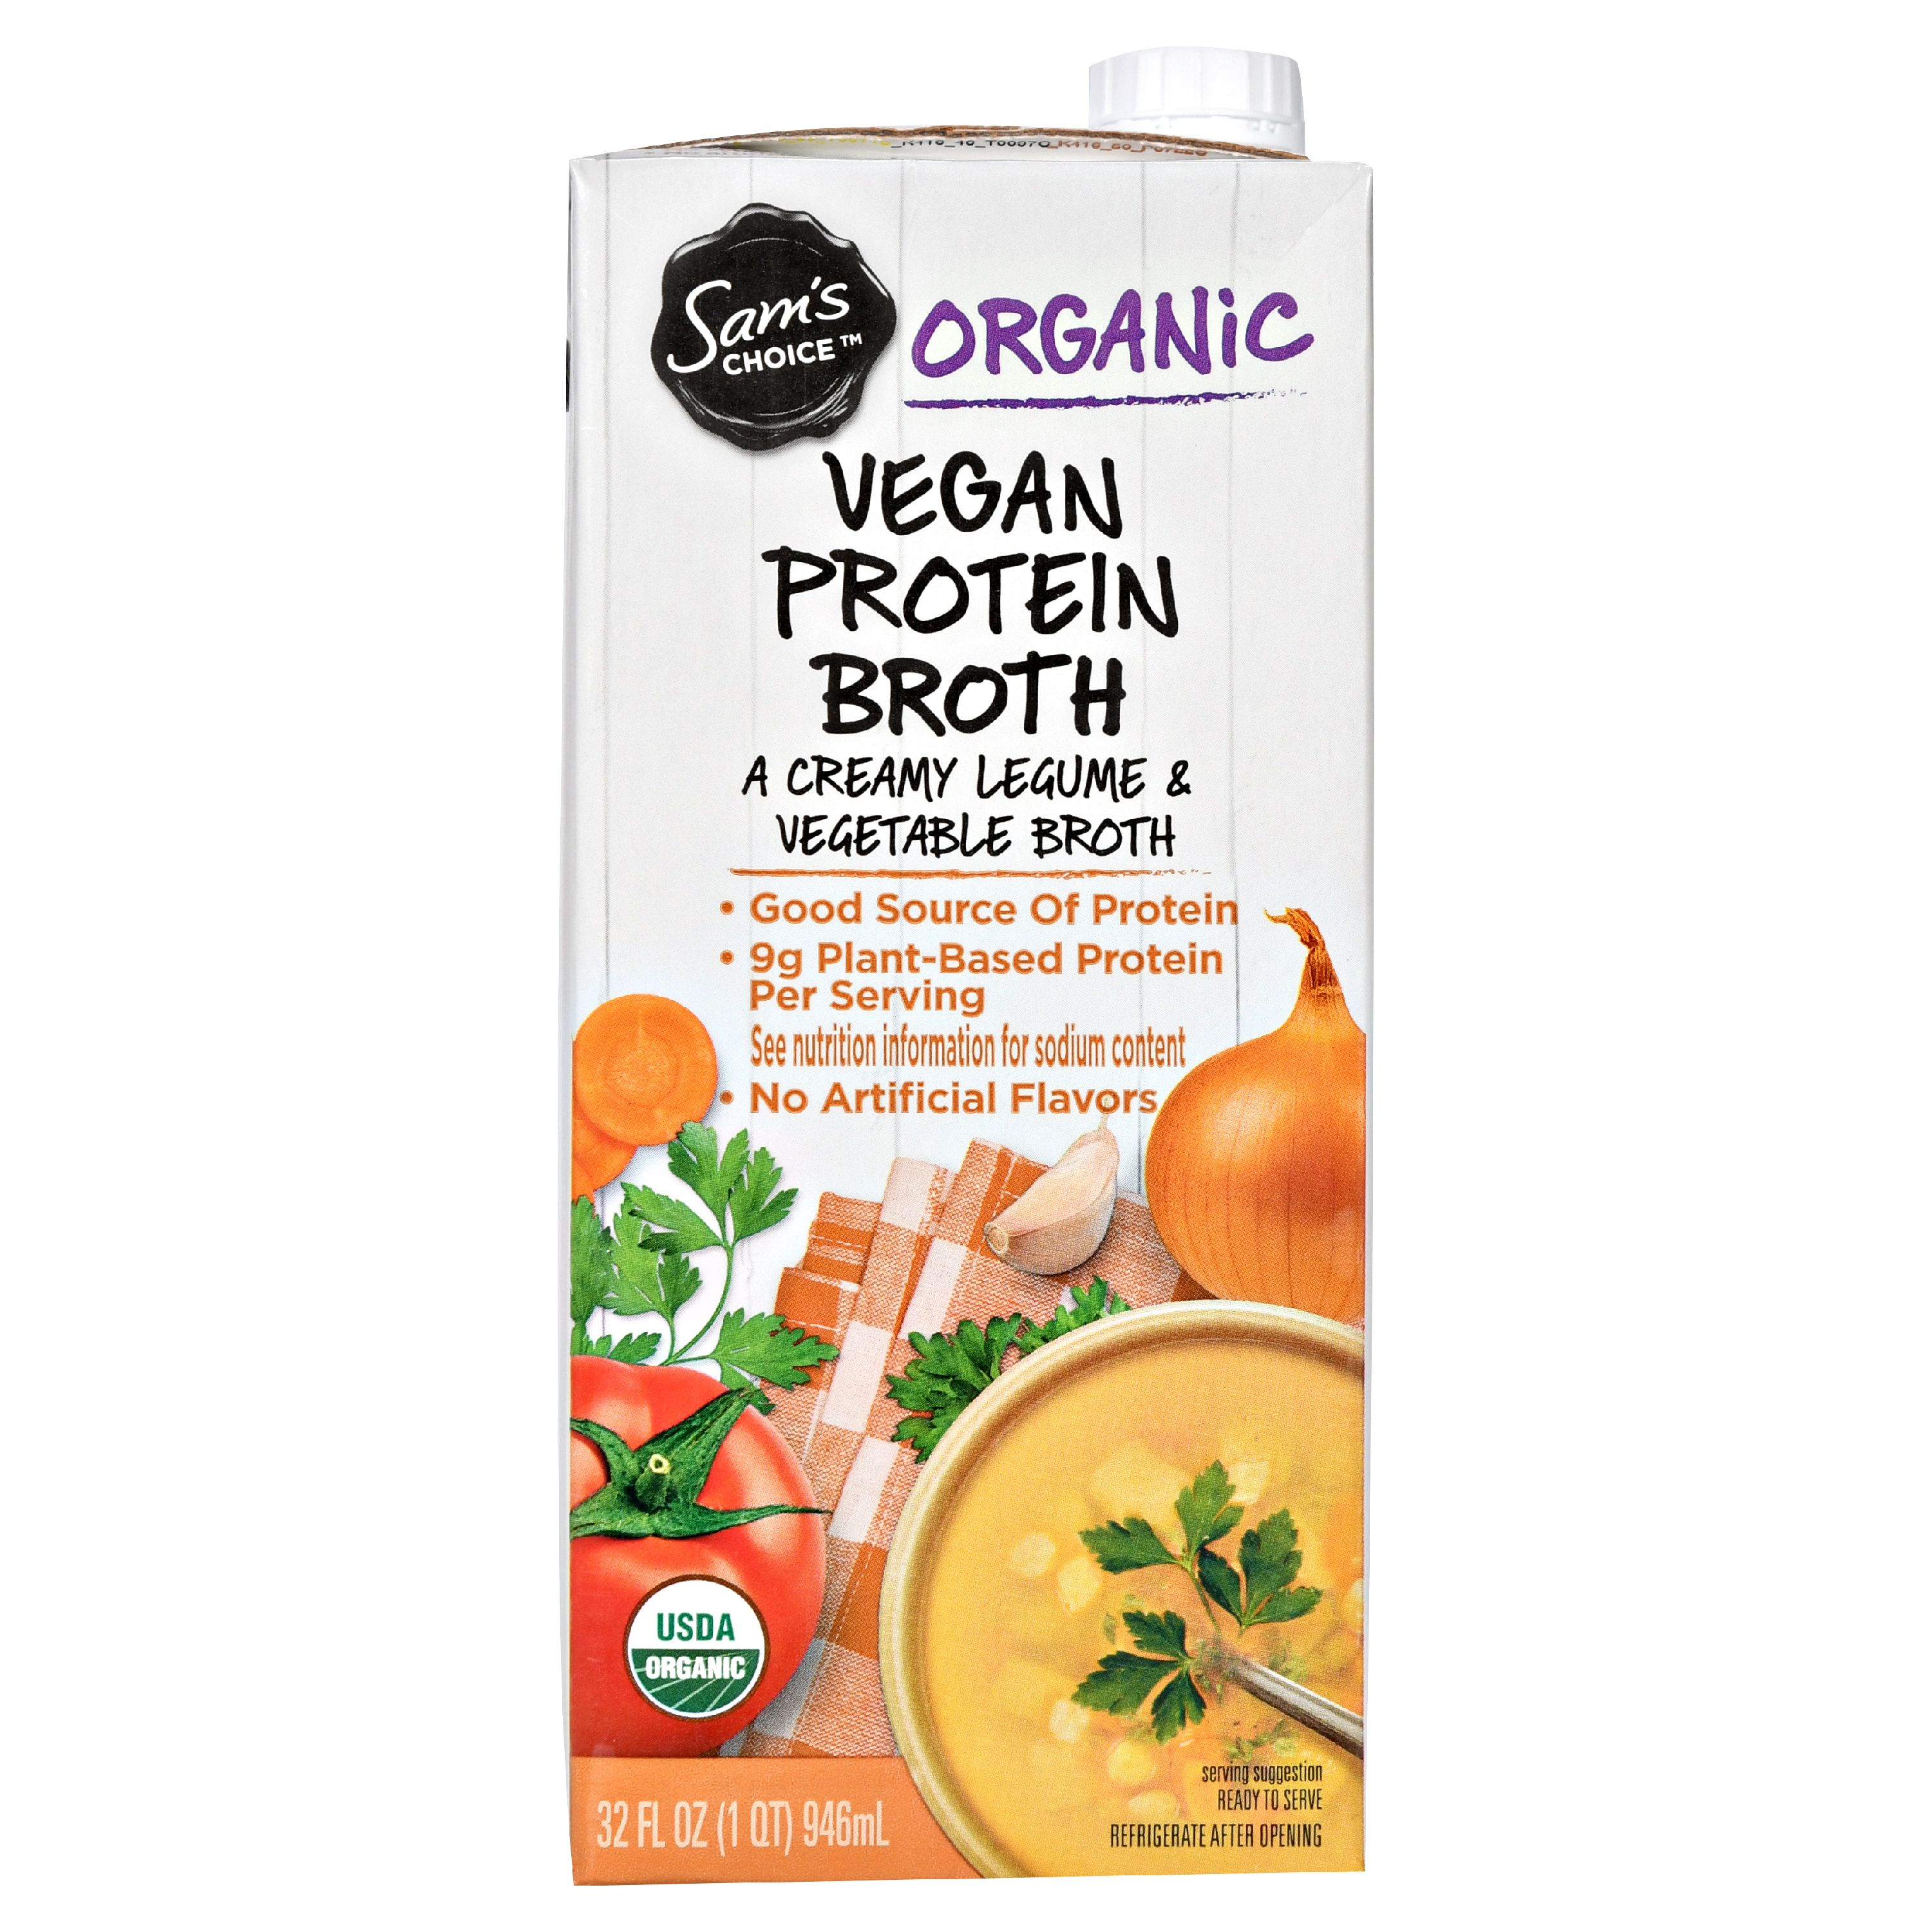 Sam's Choice Organic Vegan Protein Broth, 32 fl oz